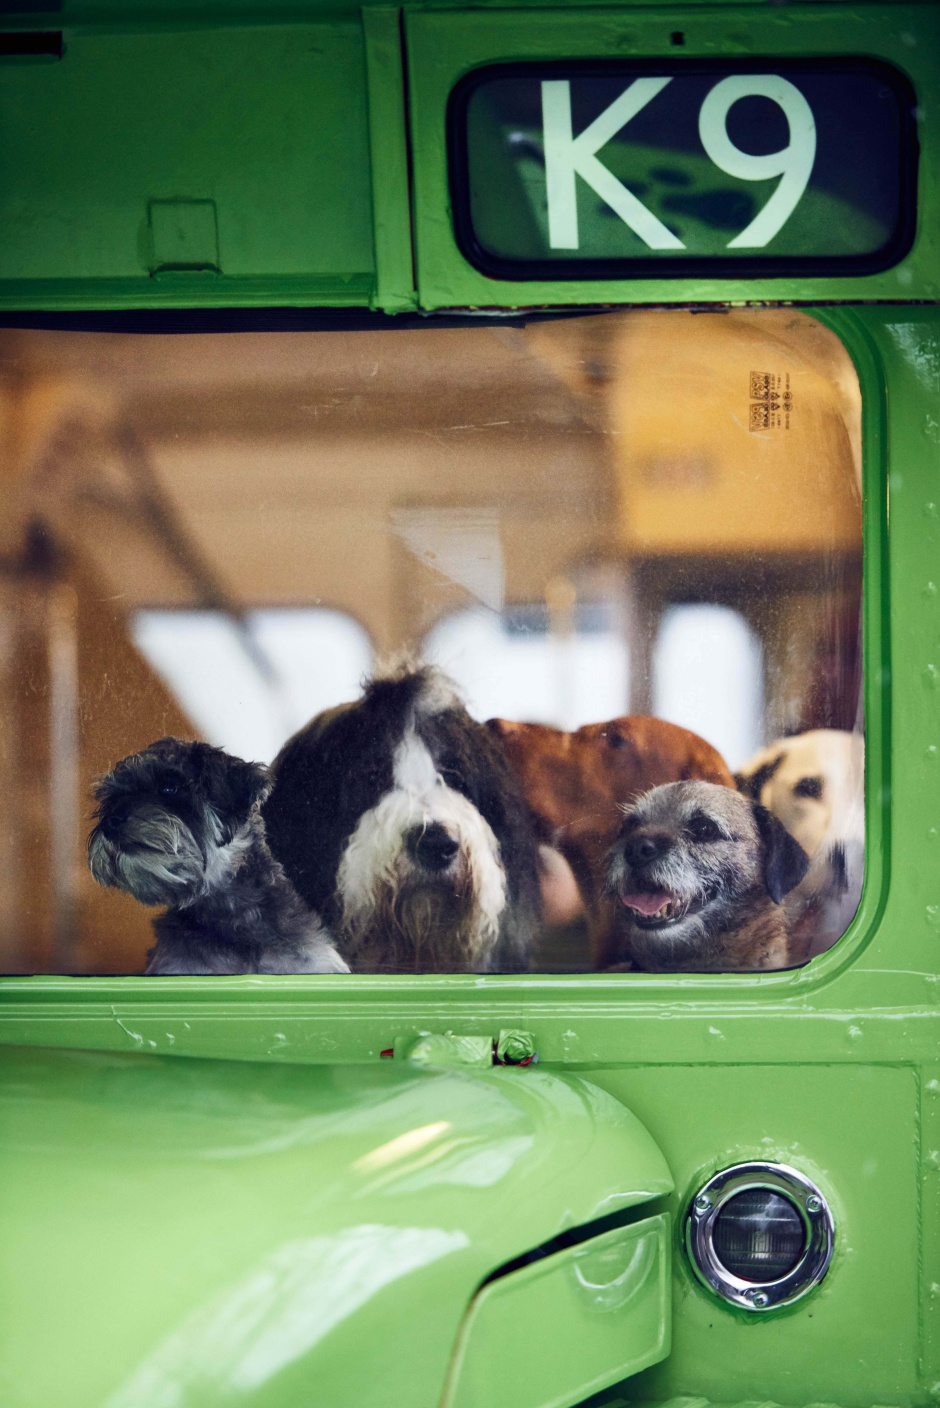 MORE TH>N DOGGYSSENTI>LS launches the world's first tour bus for dogs. The green number K9 Routemaster bus will take dogs (and their owners) to some of LondonÕs best parks and city centre dog walking spots, including Hyde Park, Kensington Palace Gardens and Green Park. Along the way, live onboard commentary for dog owners lifts the lid on LondonÕs rich canine history, including the ministerial dogs of Downing Street, the many corgis that have shared Buckingham Palace with the Queen and the location of LondonÕs only dog cemetery. This picture: canine passengers onboard the MORE TH>N DOGGYSSENTI>LS tour bus for dogs. For further information please contact Rachel Aldersley at Cow PR on 020 7234 9156 or morethan@cowpr.com PR Handout - free for editorial usage. Copyright: © Mikael Buck / MORE TH>N DOGGYSSENTI>LS